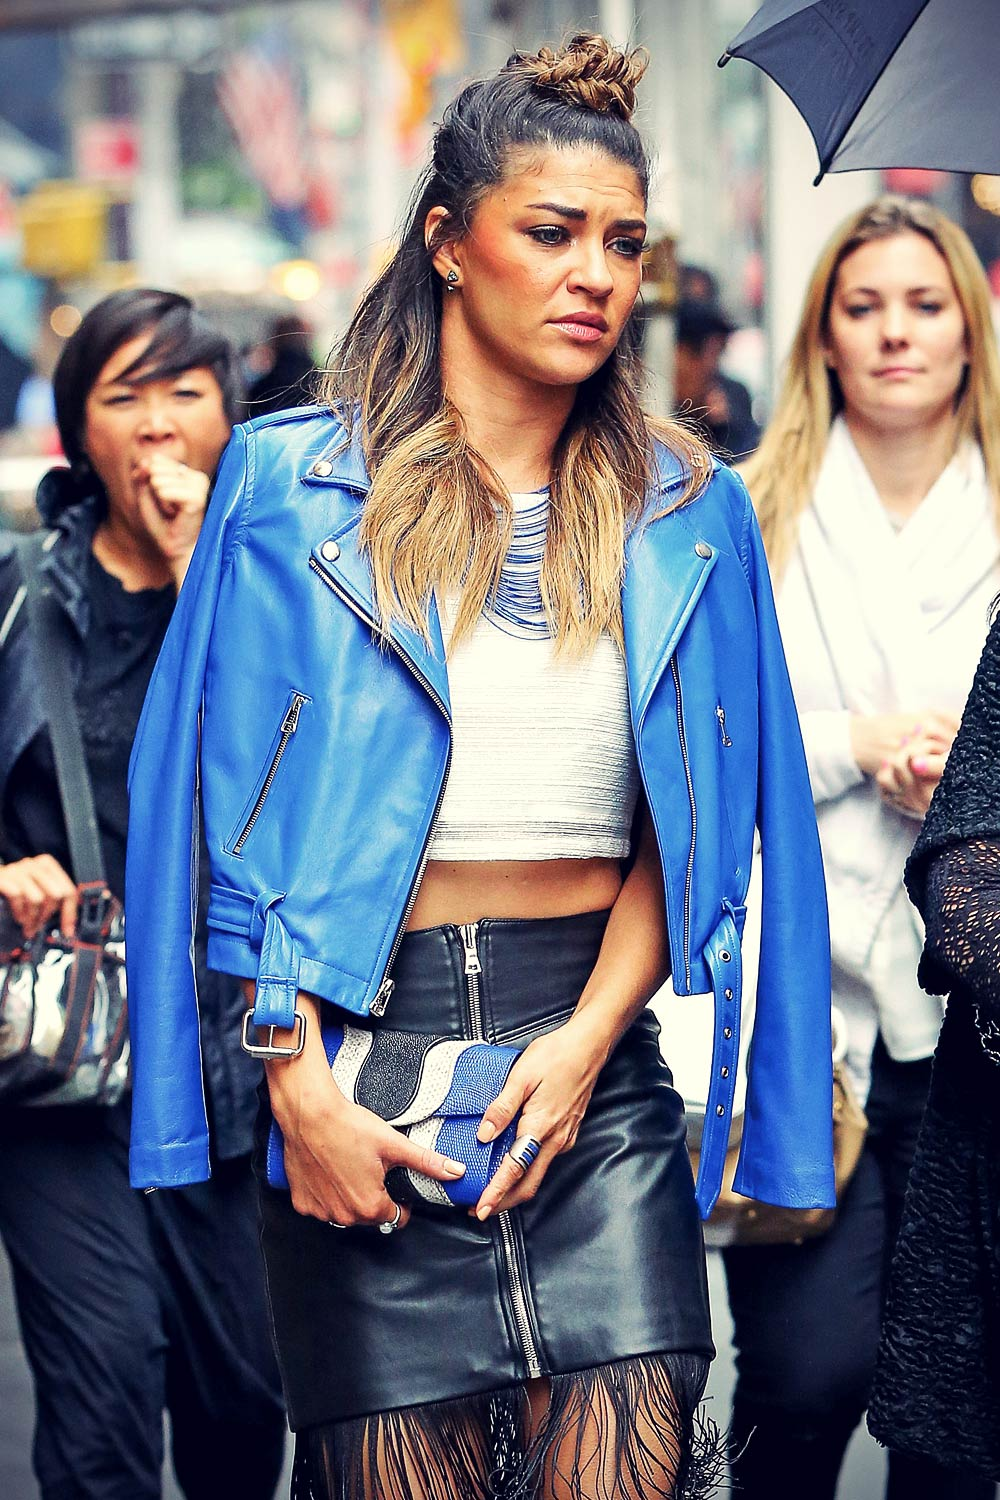 Jessica Szohr out and about in NYC